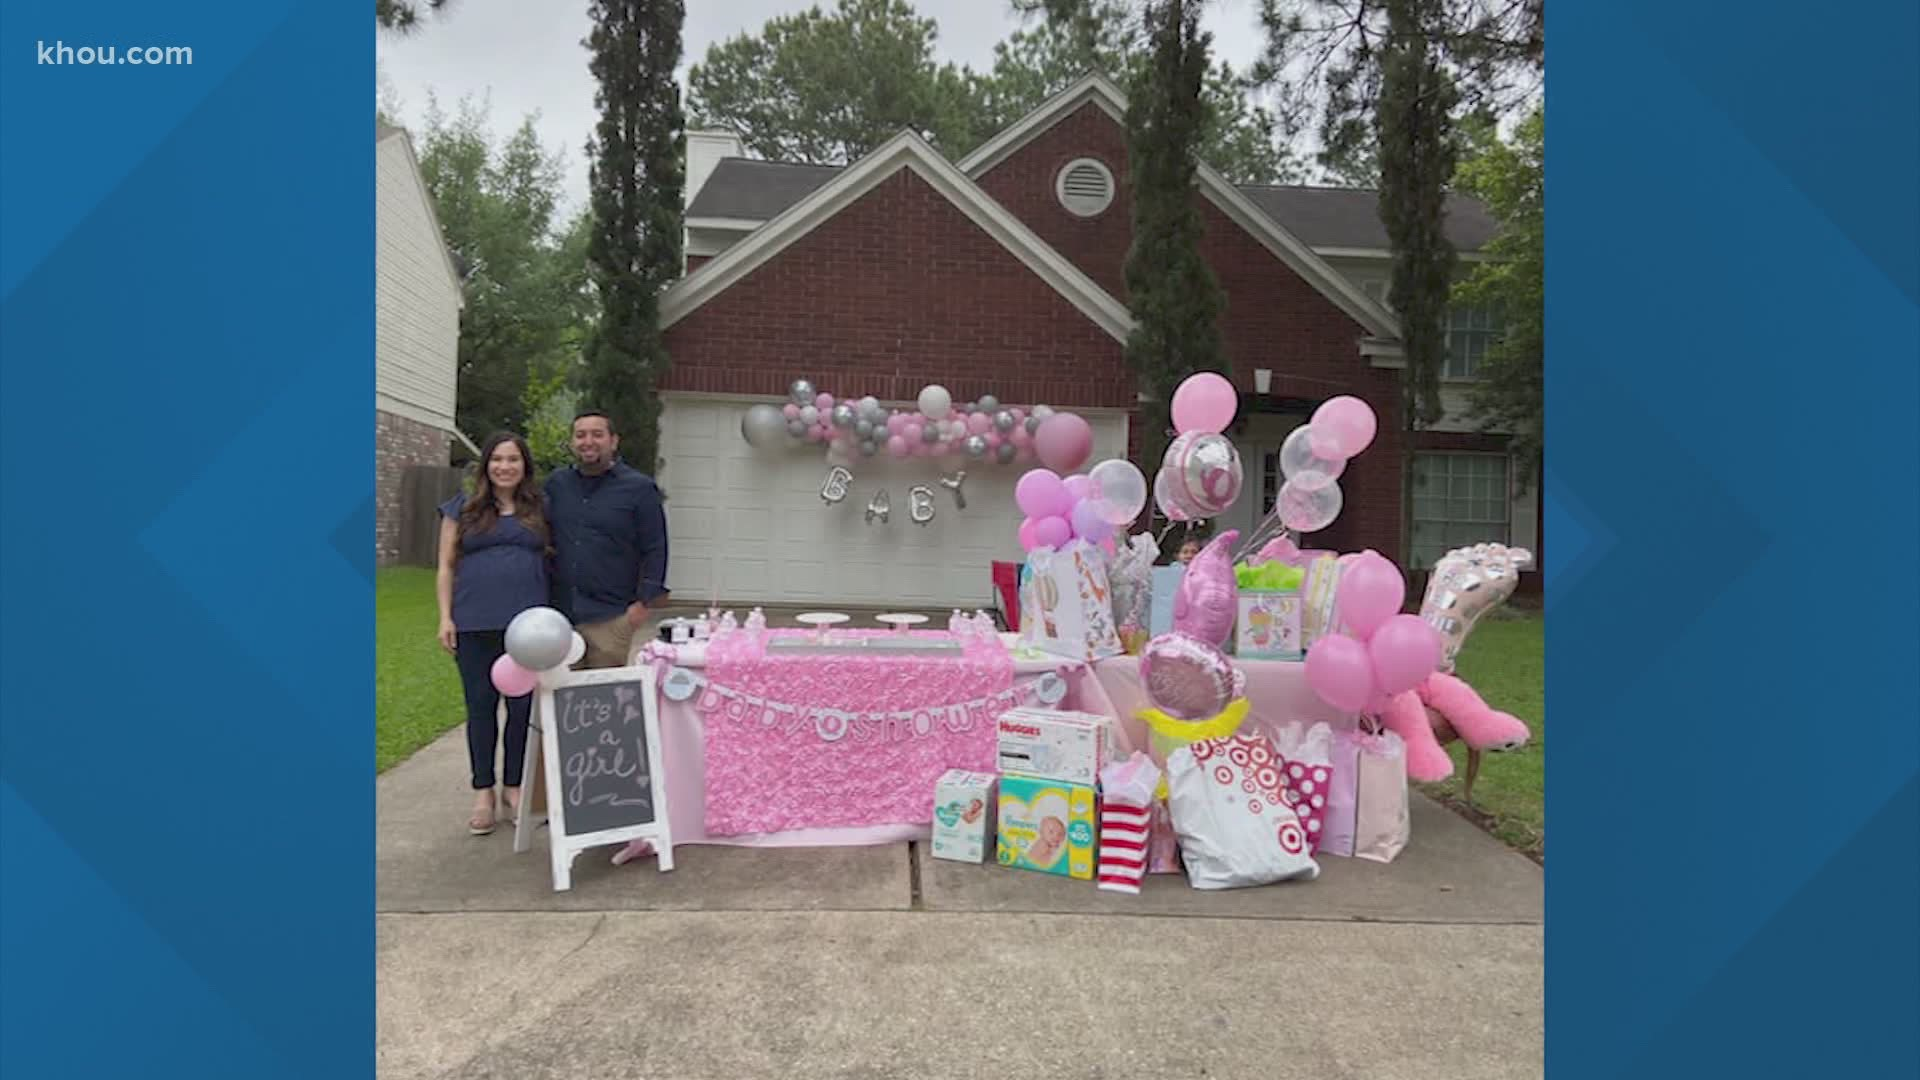 Houston Couple Welcomes First Child With Drive Thru Baby Shower Khou Com